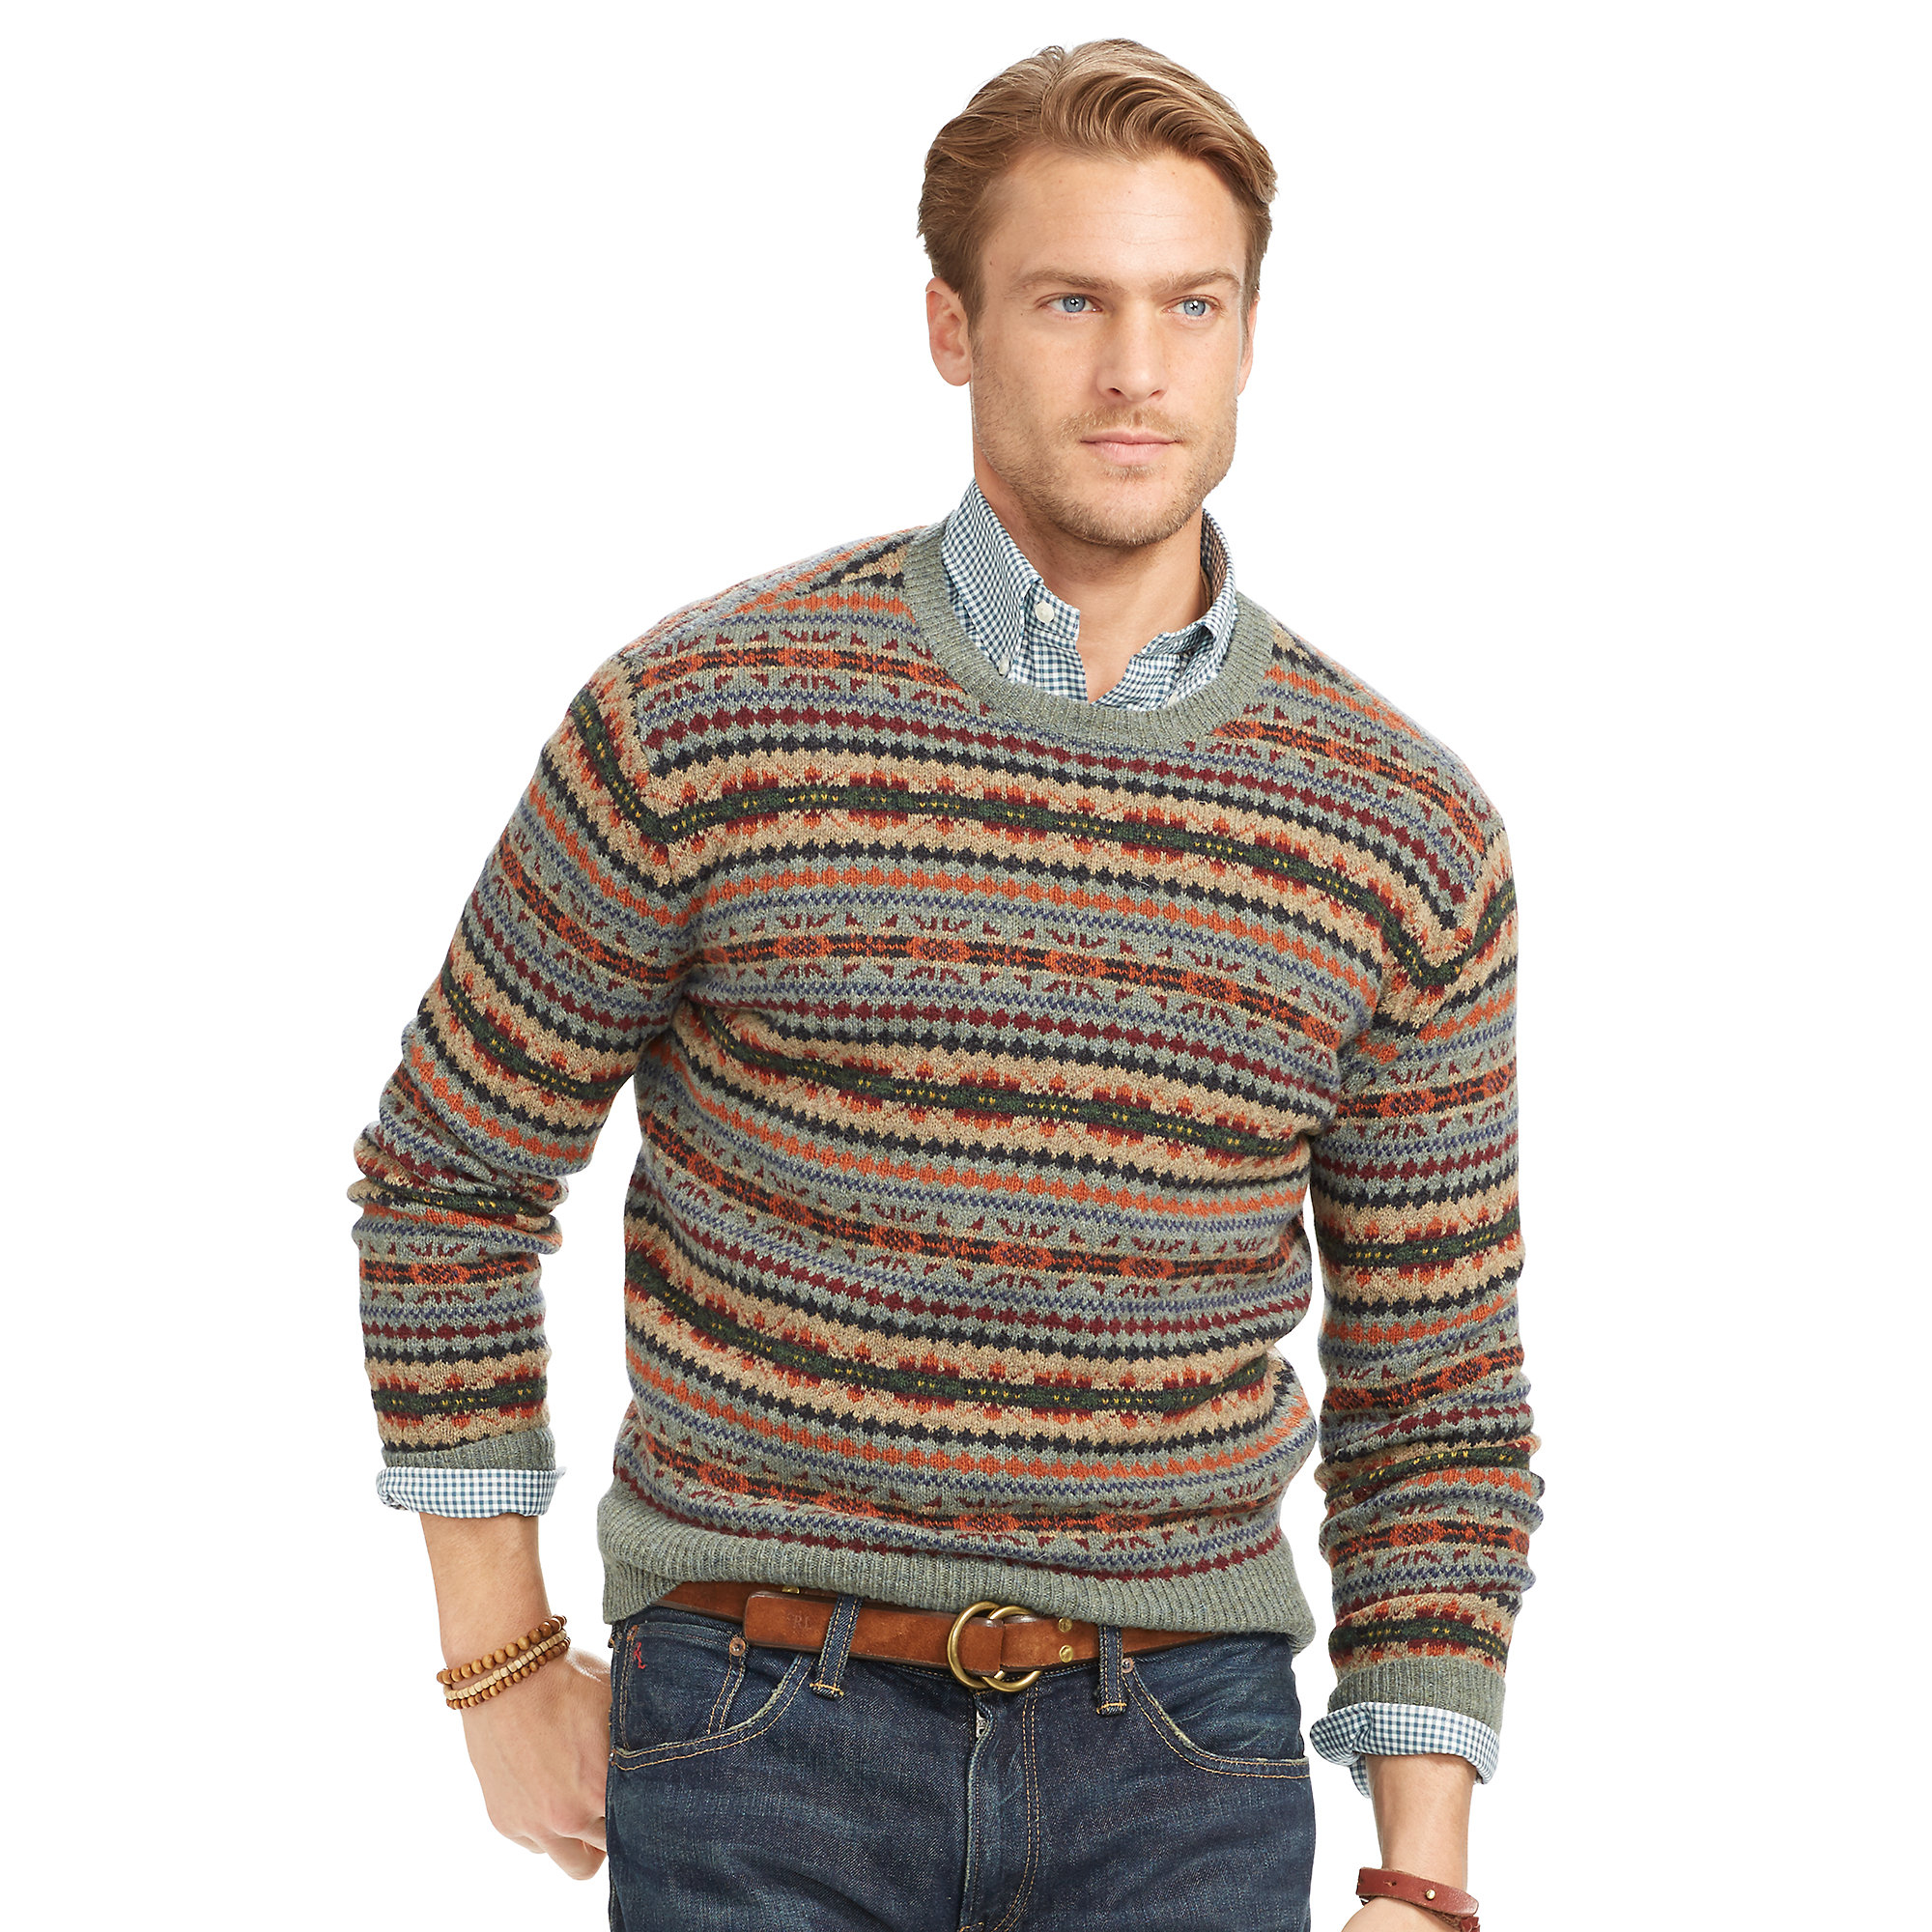 Fair Isle Clothing | Fair Isle Sweater | Grey Fair Isle Sweater